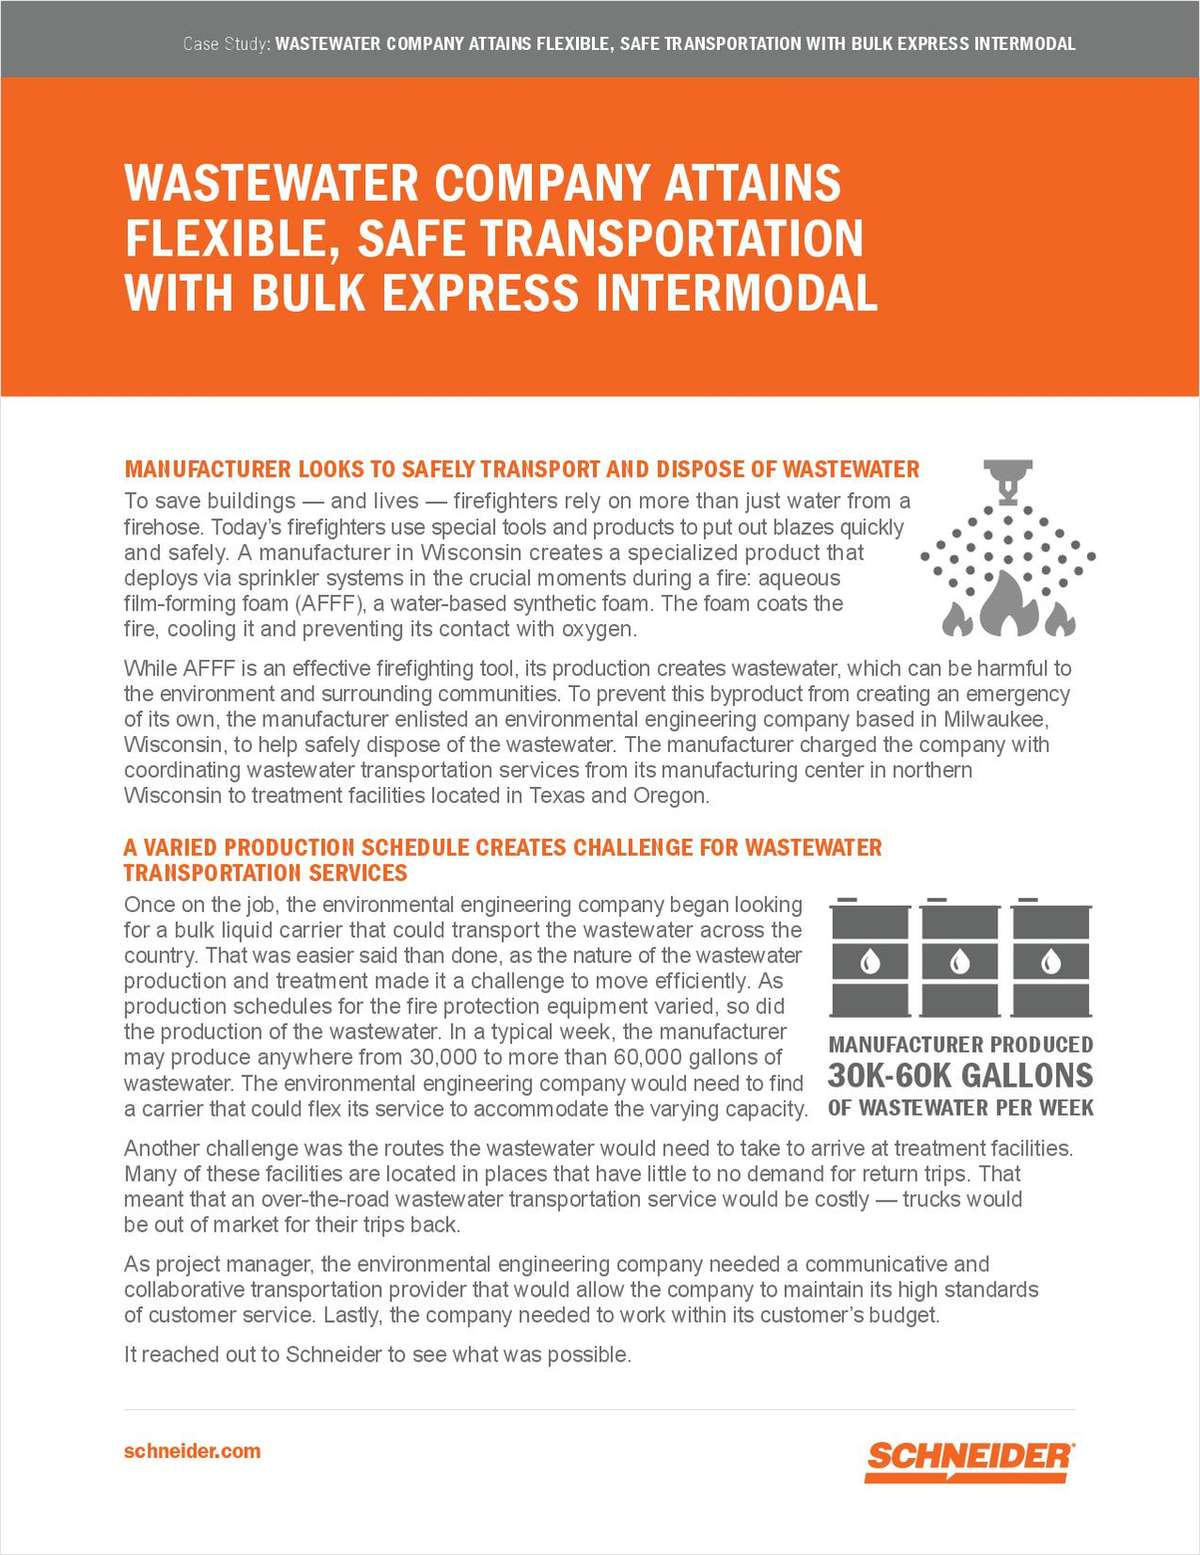 Cost-Savings AND Flexible Bulk Liquid Transportation -- How one Engineering Company Finally Received the Flexible, Safe Transportation it Deserved